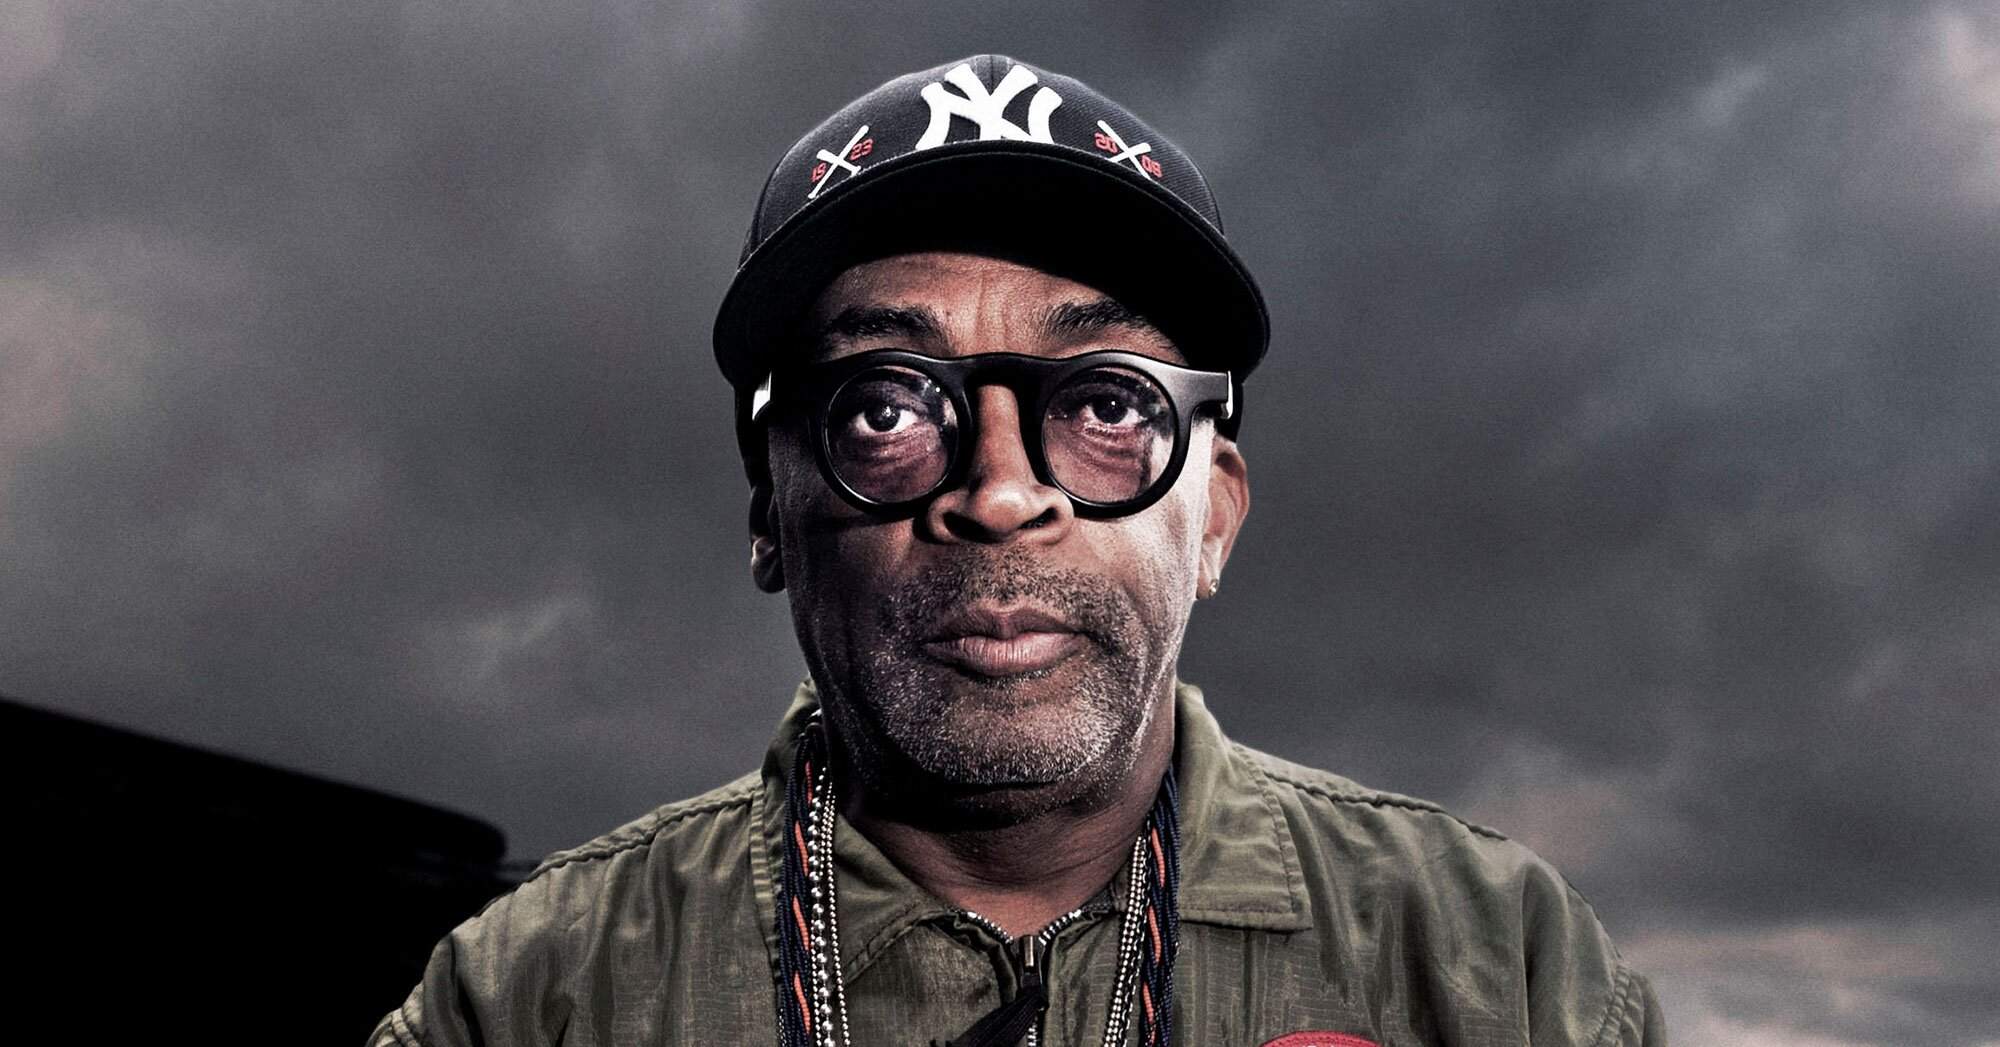 Spike Lee releases powerful new short film amid George Floyd protests